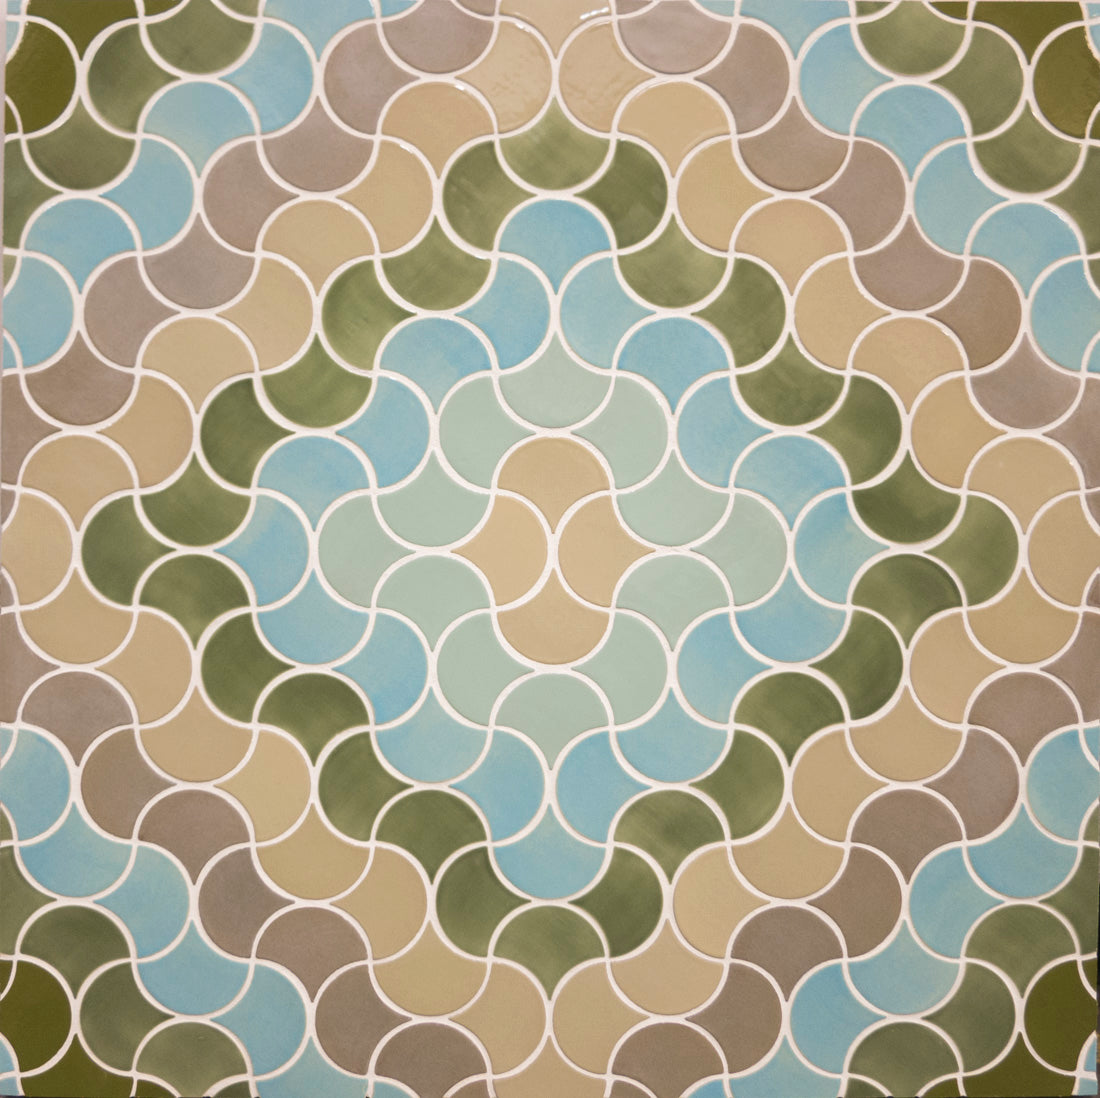 Tile-Waves-092716-1 Make Tile Waves with Moroccan Fish Scales All Residential Tile Inspiration   IMG_3879 Make Tile Waves with Moroccan Fish Scales All Residential Tile Inspiration   MoroccanFishScalesGardenia Make Tile Waves with Moroccan Fish Scales All Residential Tile Inspiration